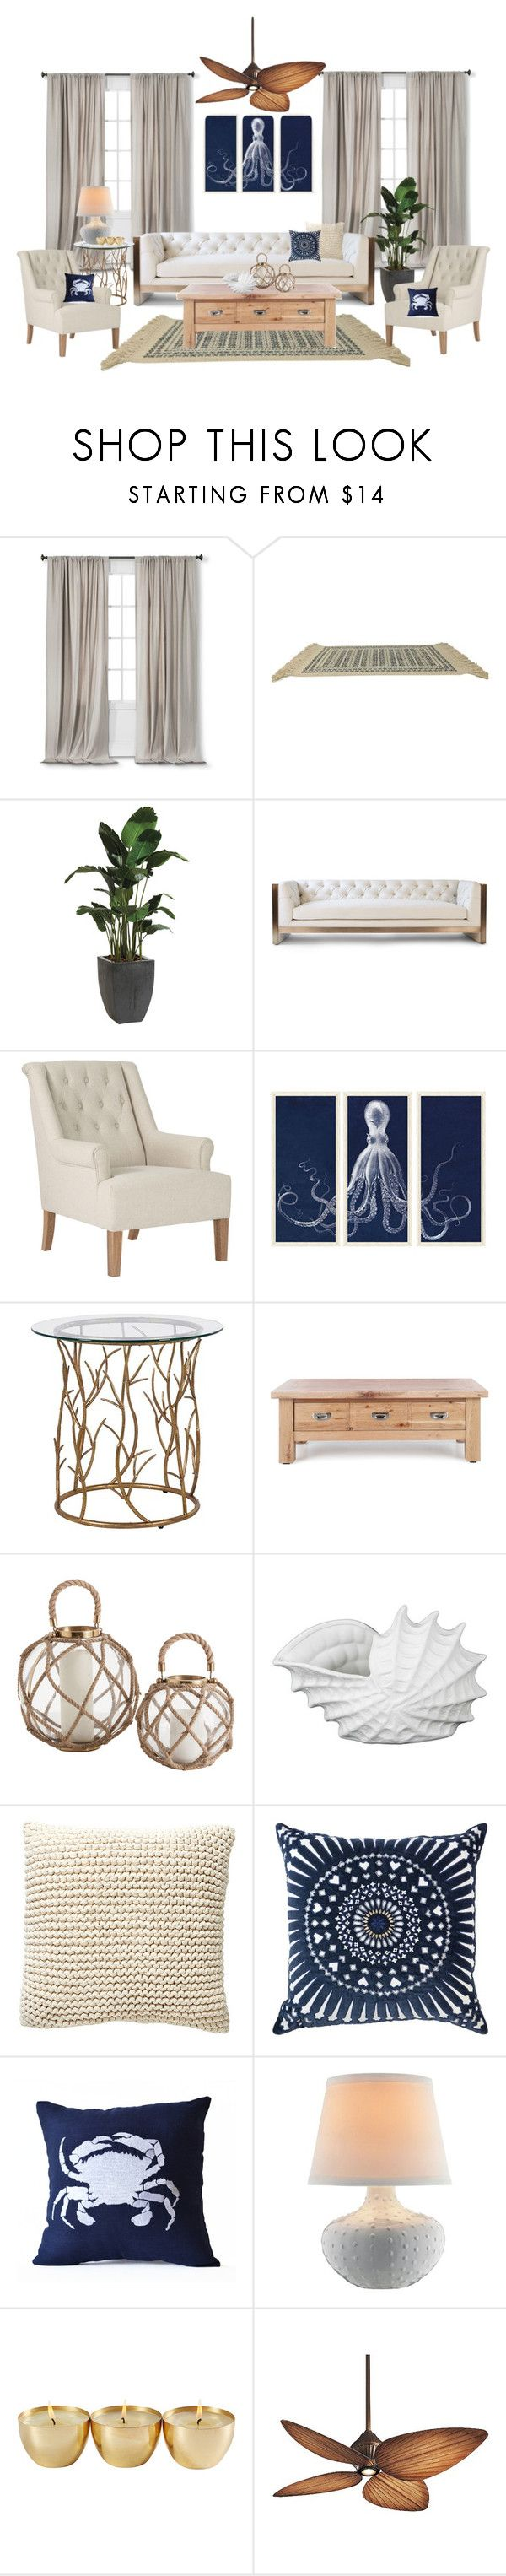 """Hamptons"" by sally-w on Polyvore featuring interior, interiors, interior design, home, home decor, interior decorating, Nate Berkus, Karastan, Ethan Allen and Vesper Dresses"